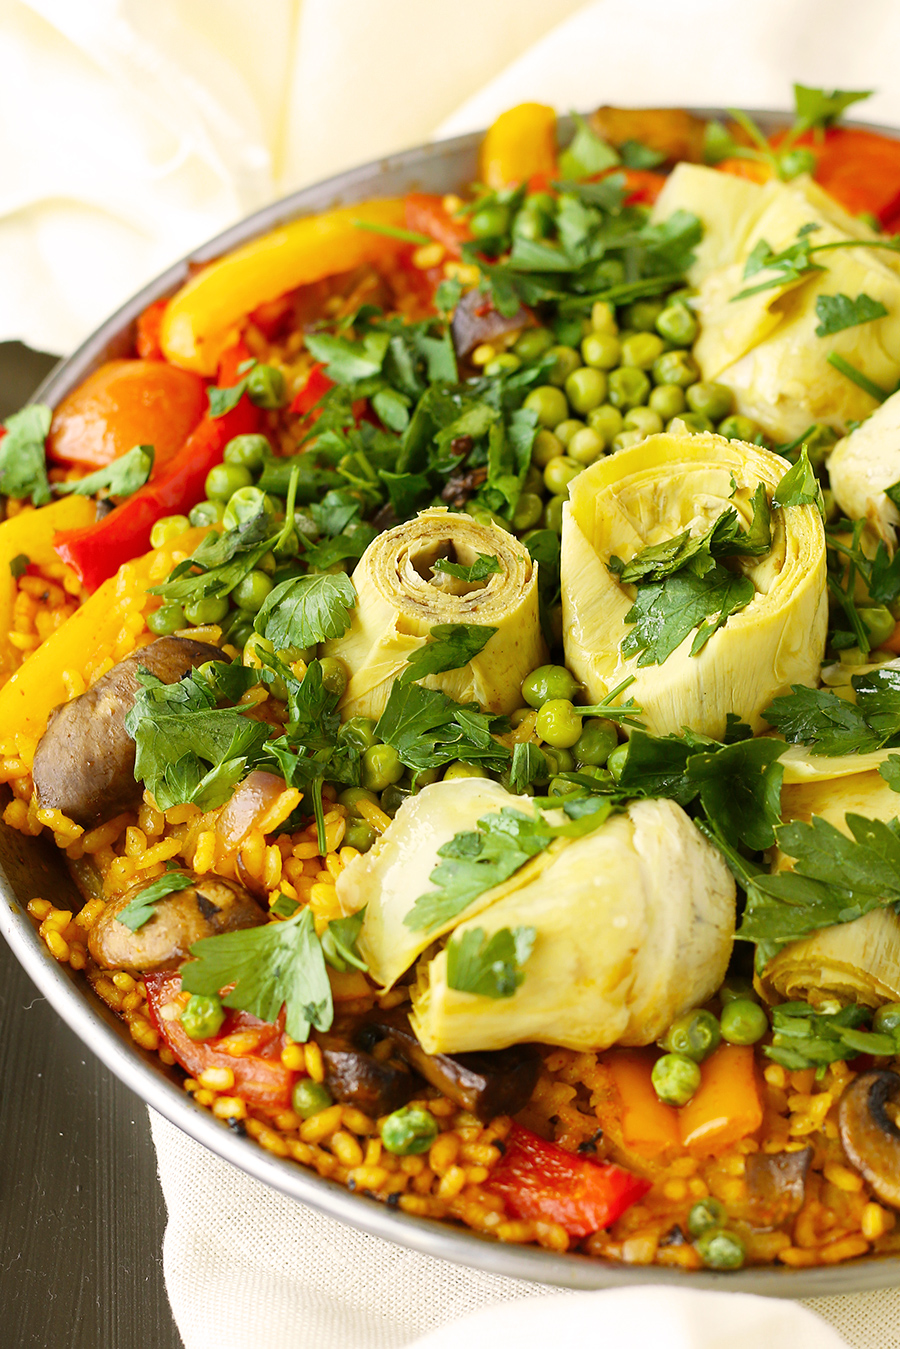 Aging Revealed's Simple Vegan Paella